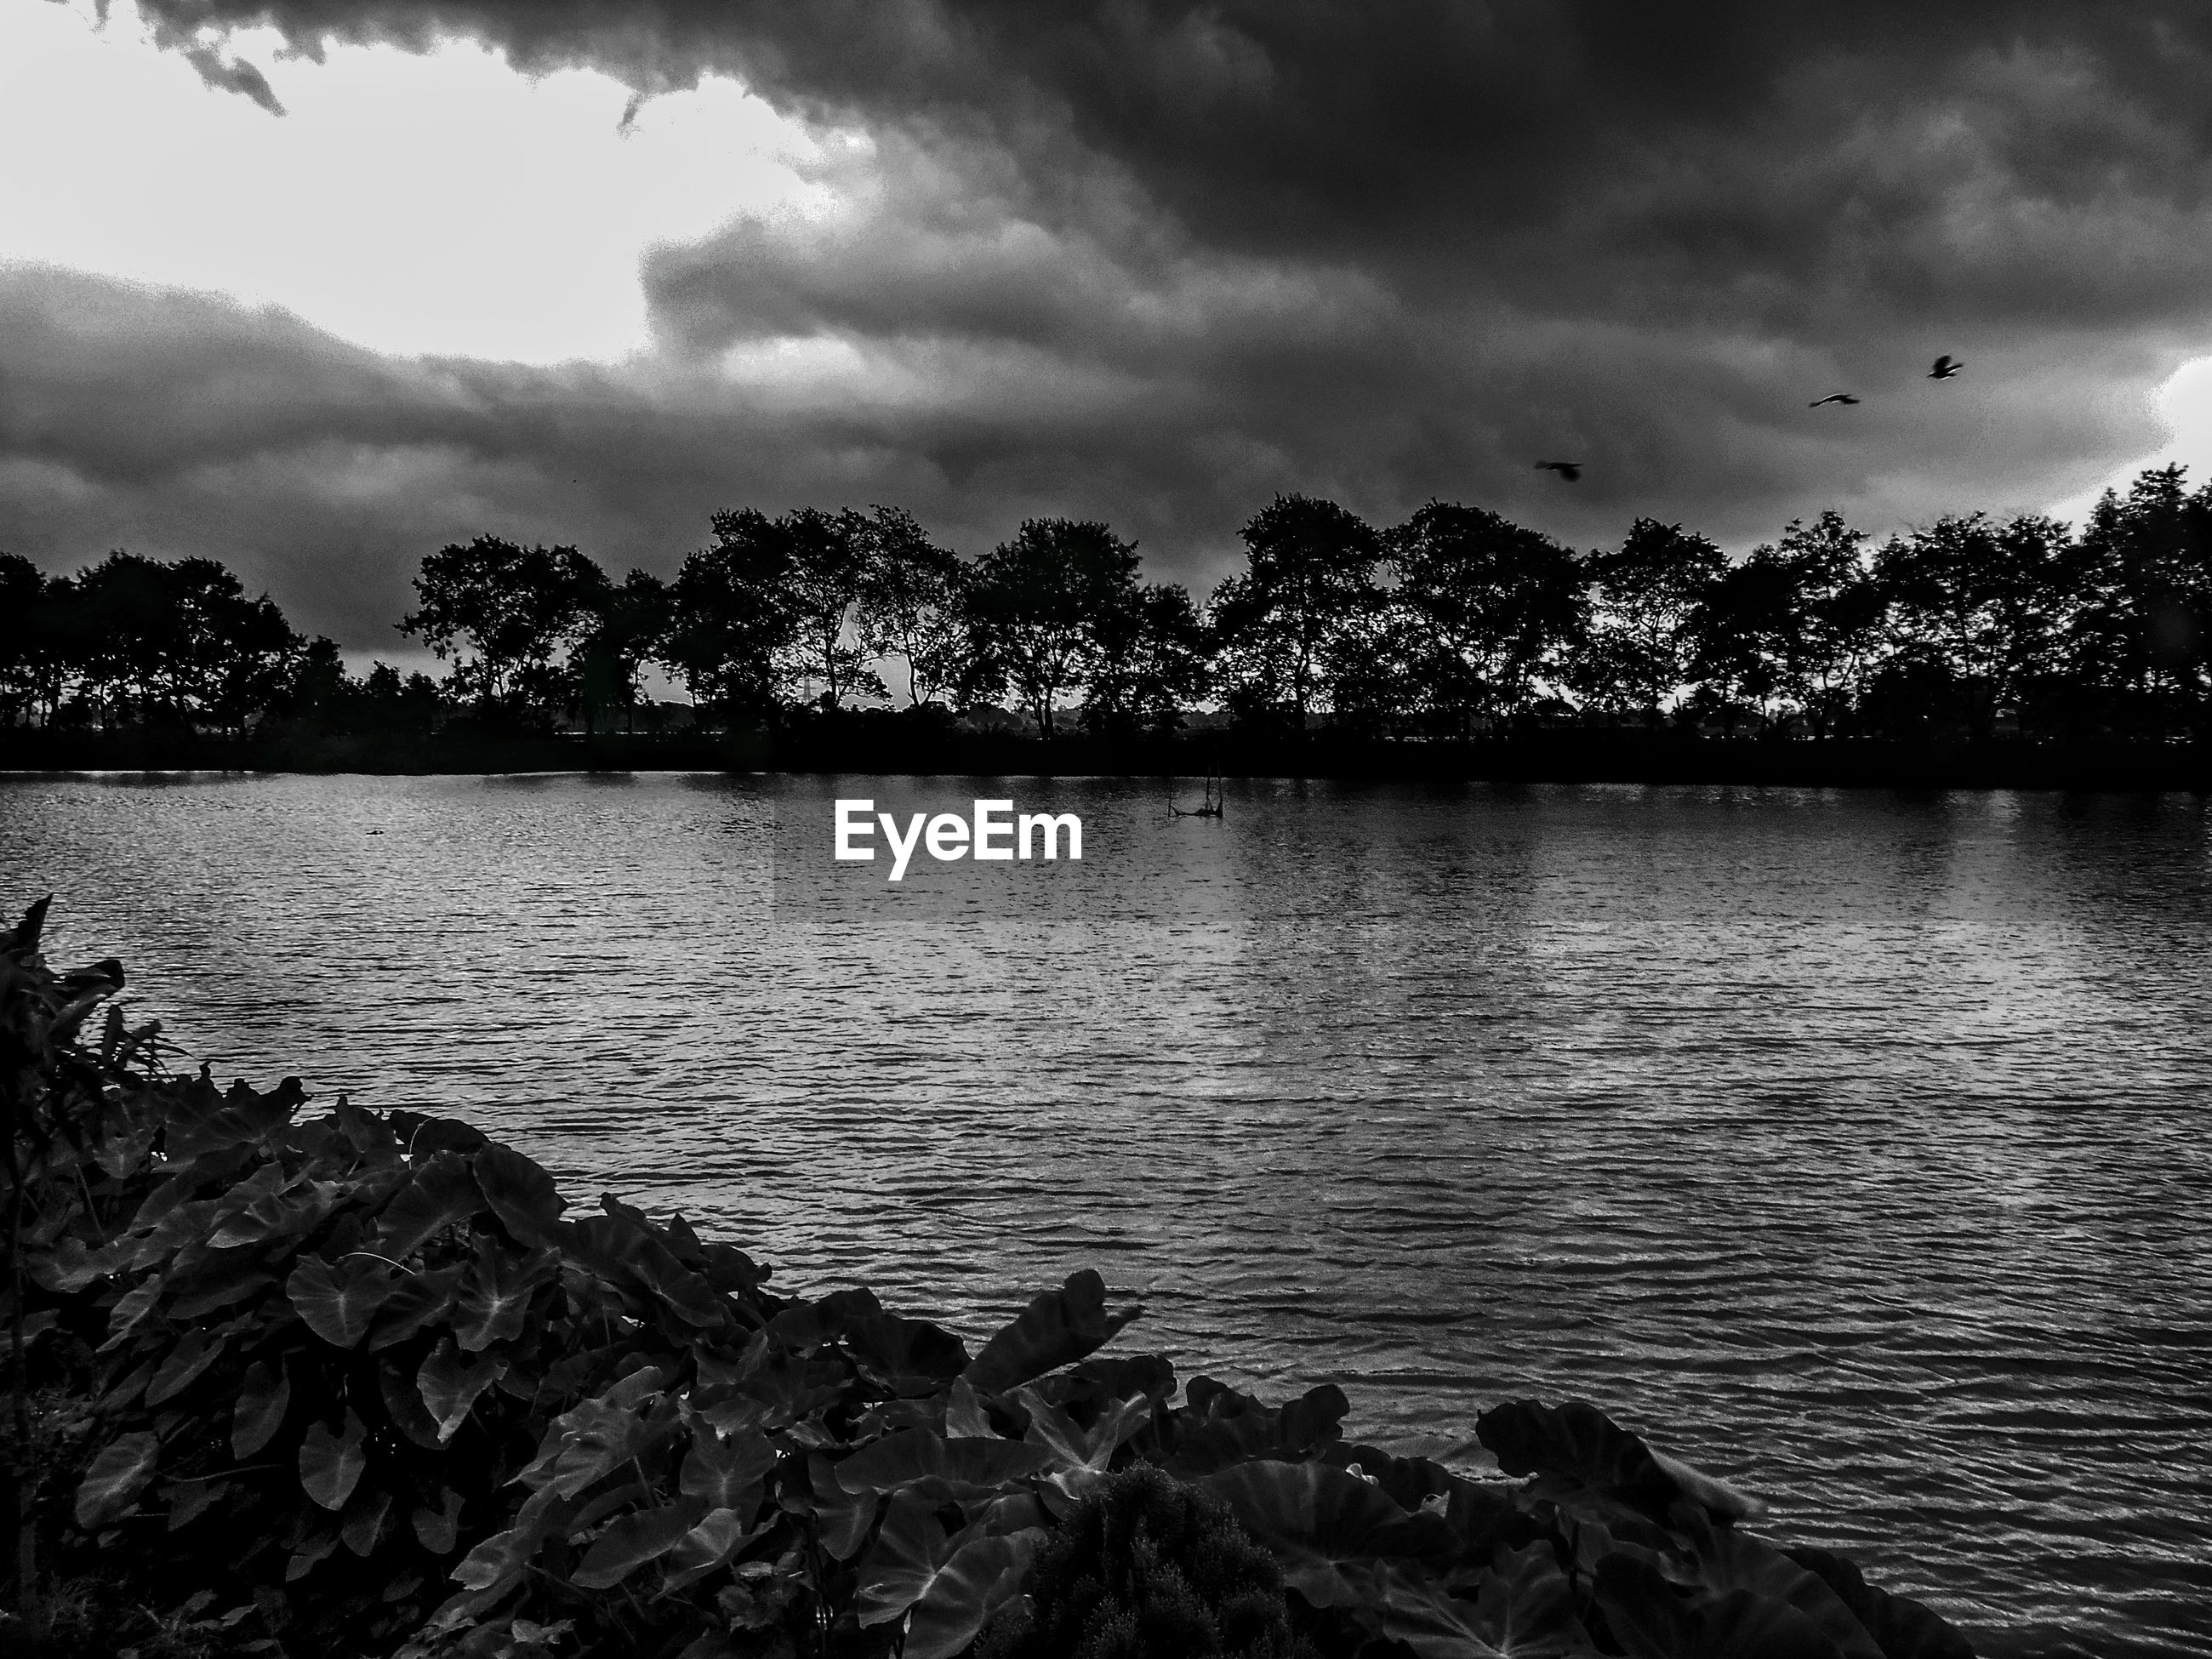 tree, water, tranquil scene, silhouette, tranquility, sky, cloud - sky, scenics, lake, rippled, atmospheric mood, beauty in nature, nature, sea, non-urban scene, cloudy, riverbank, calm, majestic, dramatic sky, outdoors, atmosphere, vacations, no people, moody sky, ocean, seascape